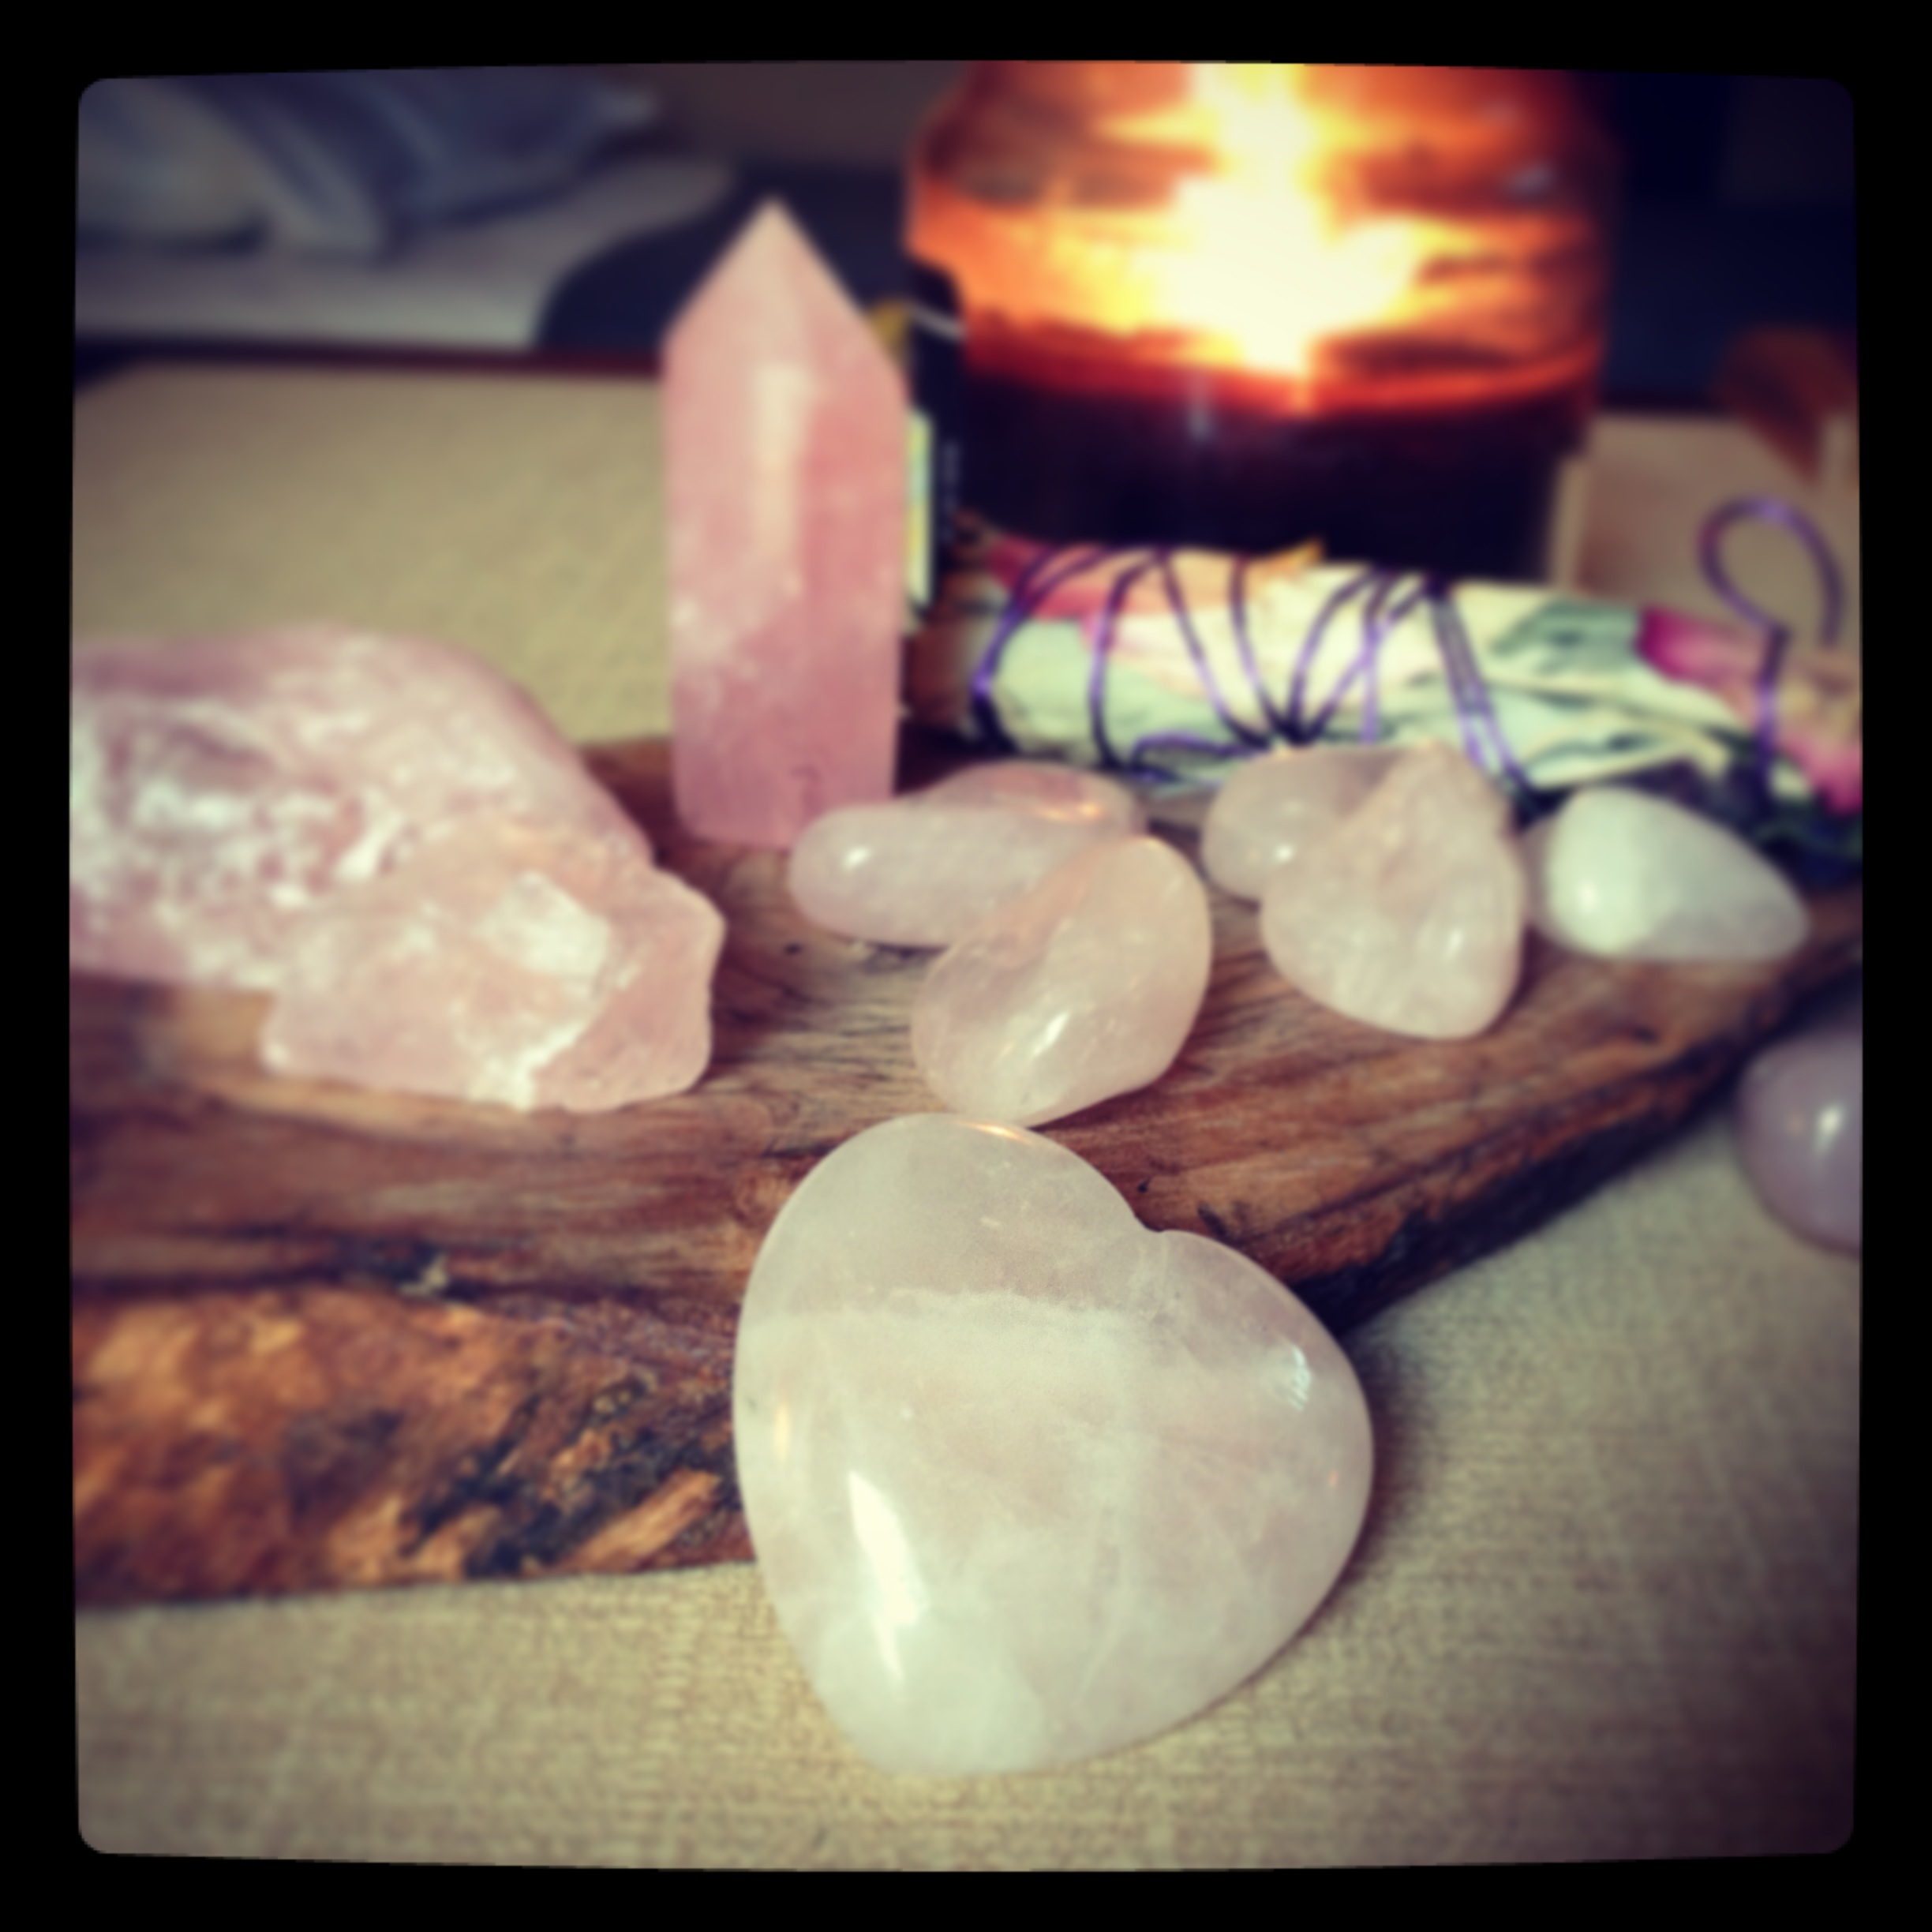 Rose quartz hearts are incredible popular for crystal healing work. The Rose Quartz tower is great for a center point for grids, and can be put directly on the Heart Chakra for blockage releases. Raw rose quartz, shown at the left, is as beautiful as tumbled stones.